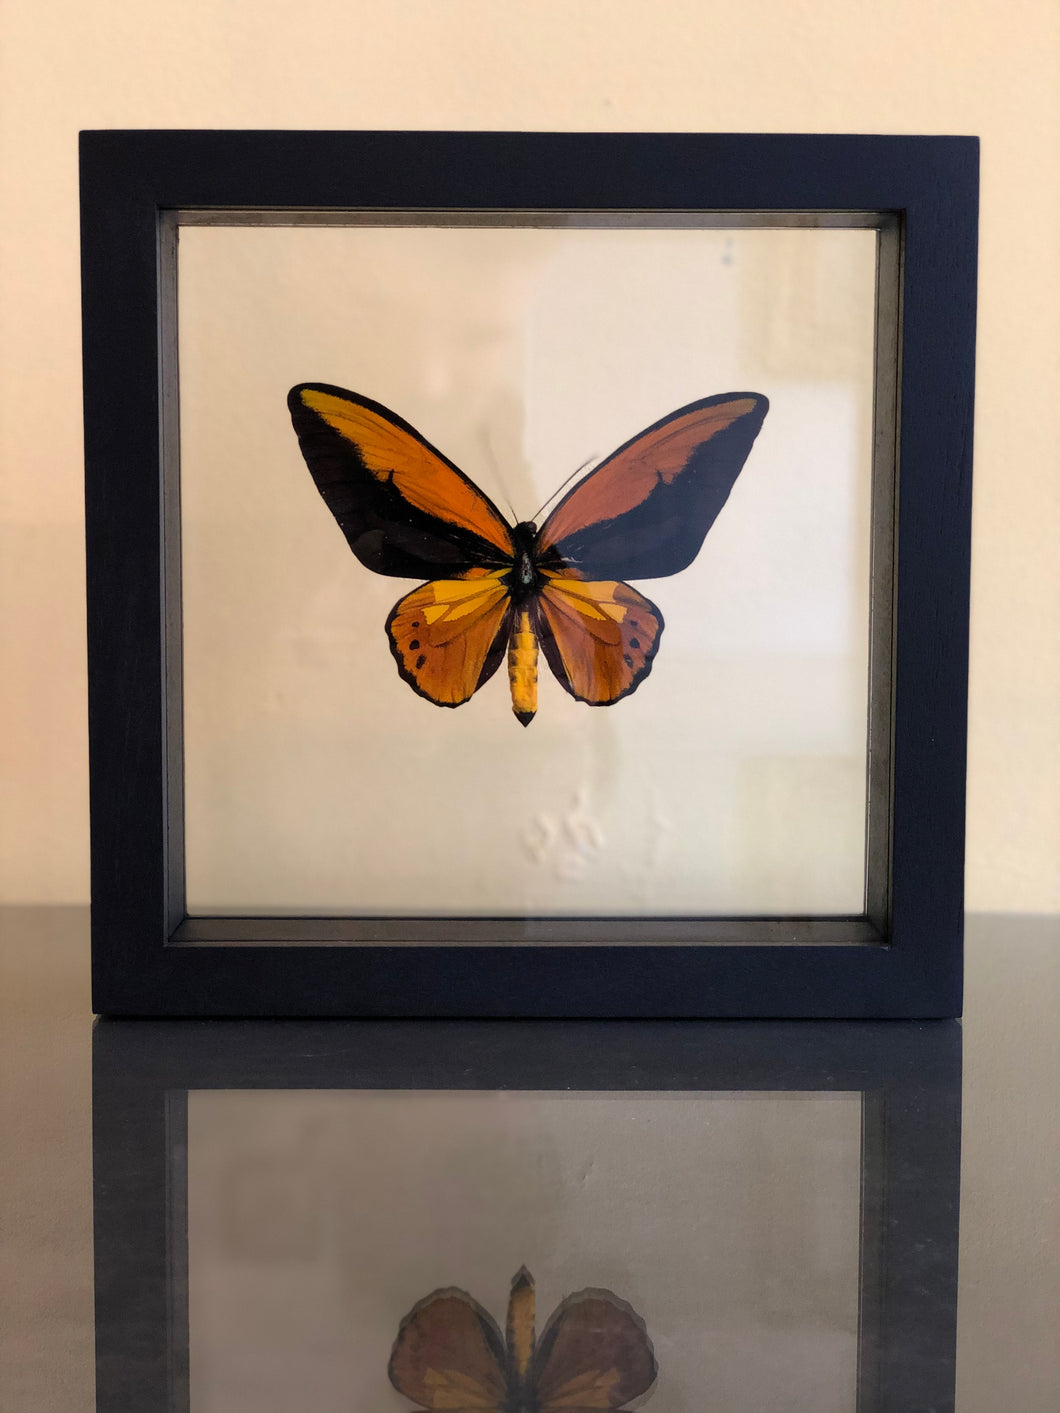 Ornithoptera Croesus in lijst